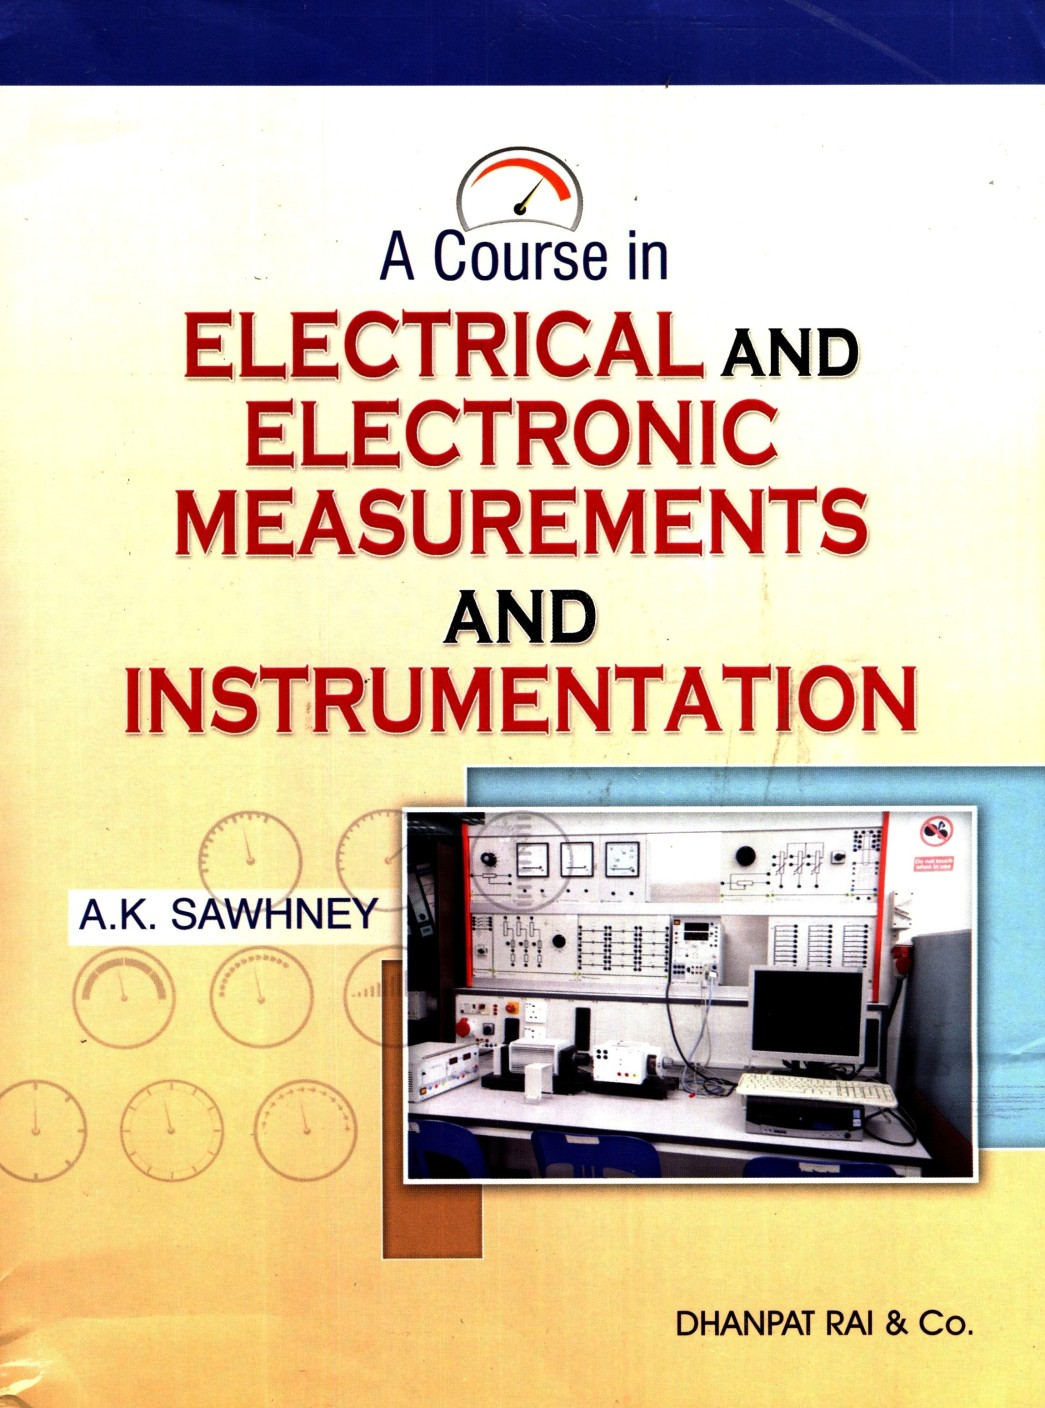 A k sawhney electrical and electronic measurements and instrumentation